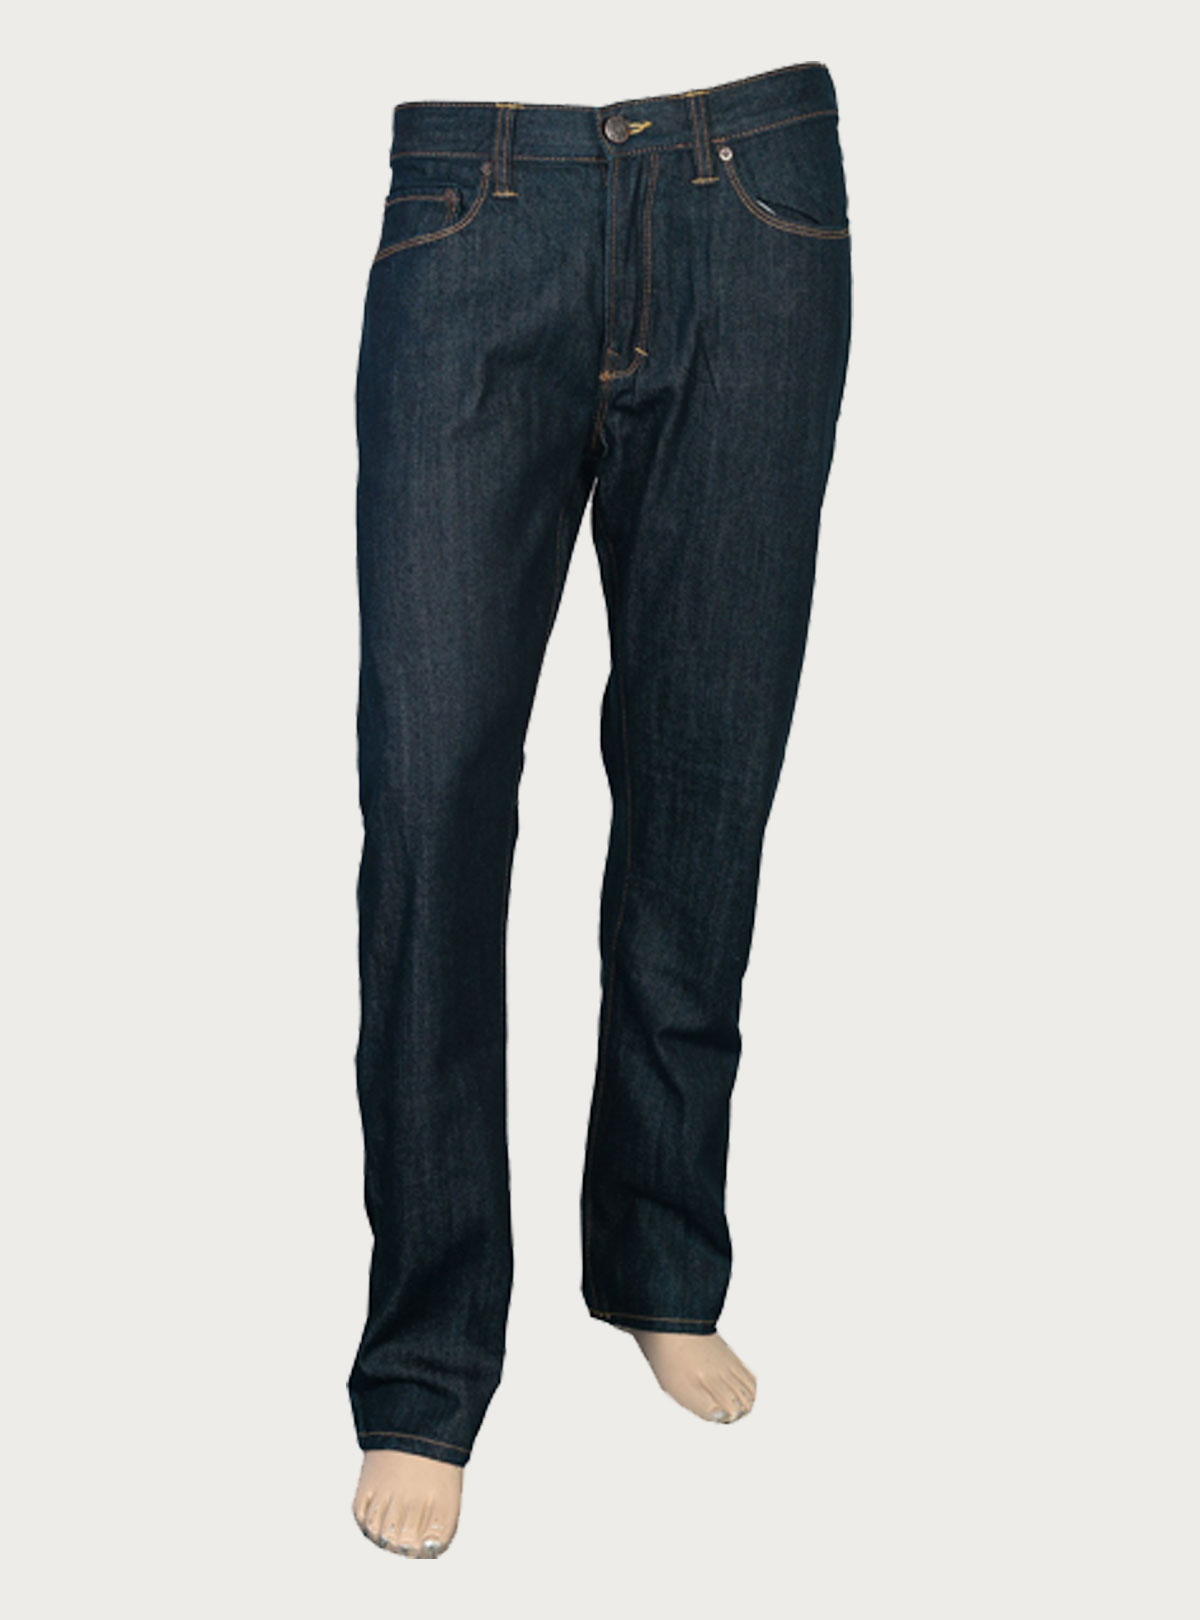 Stylish Jeans By GAP